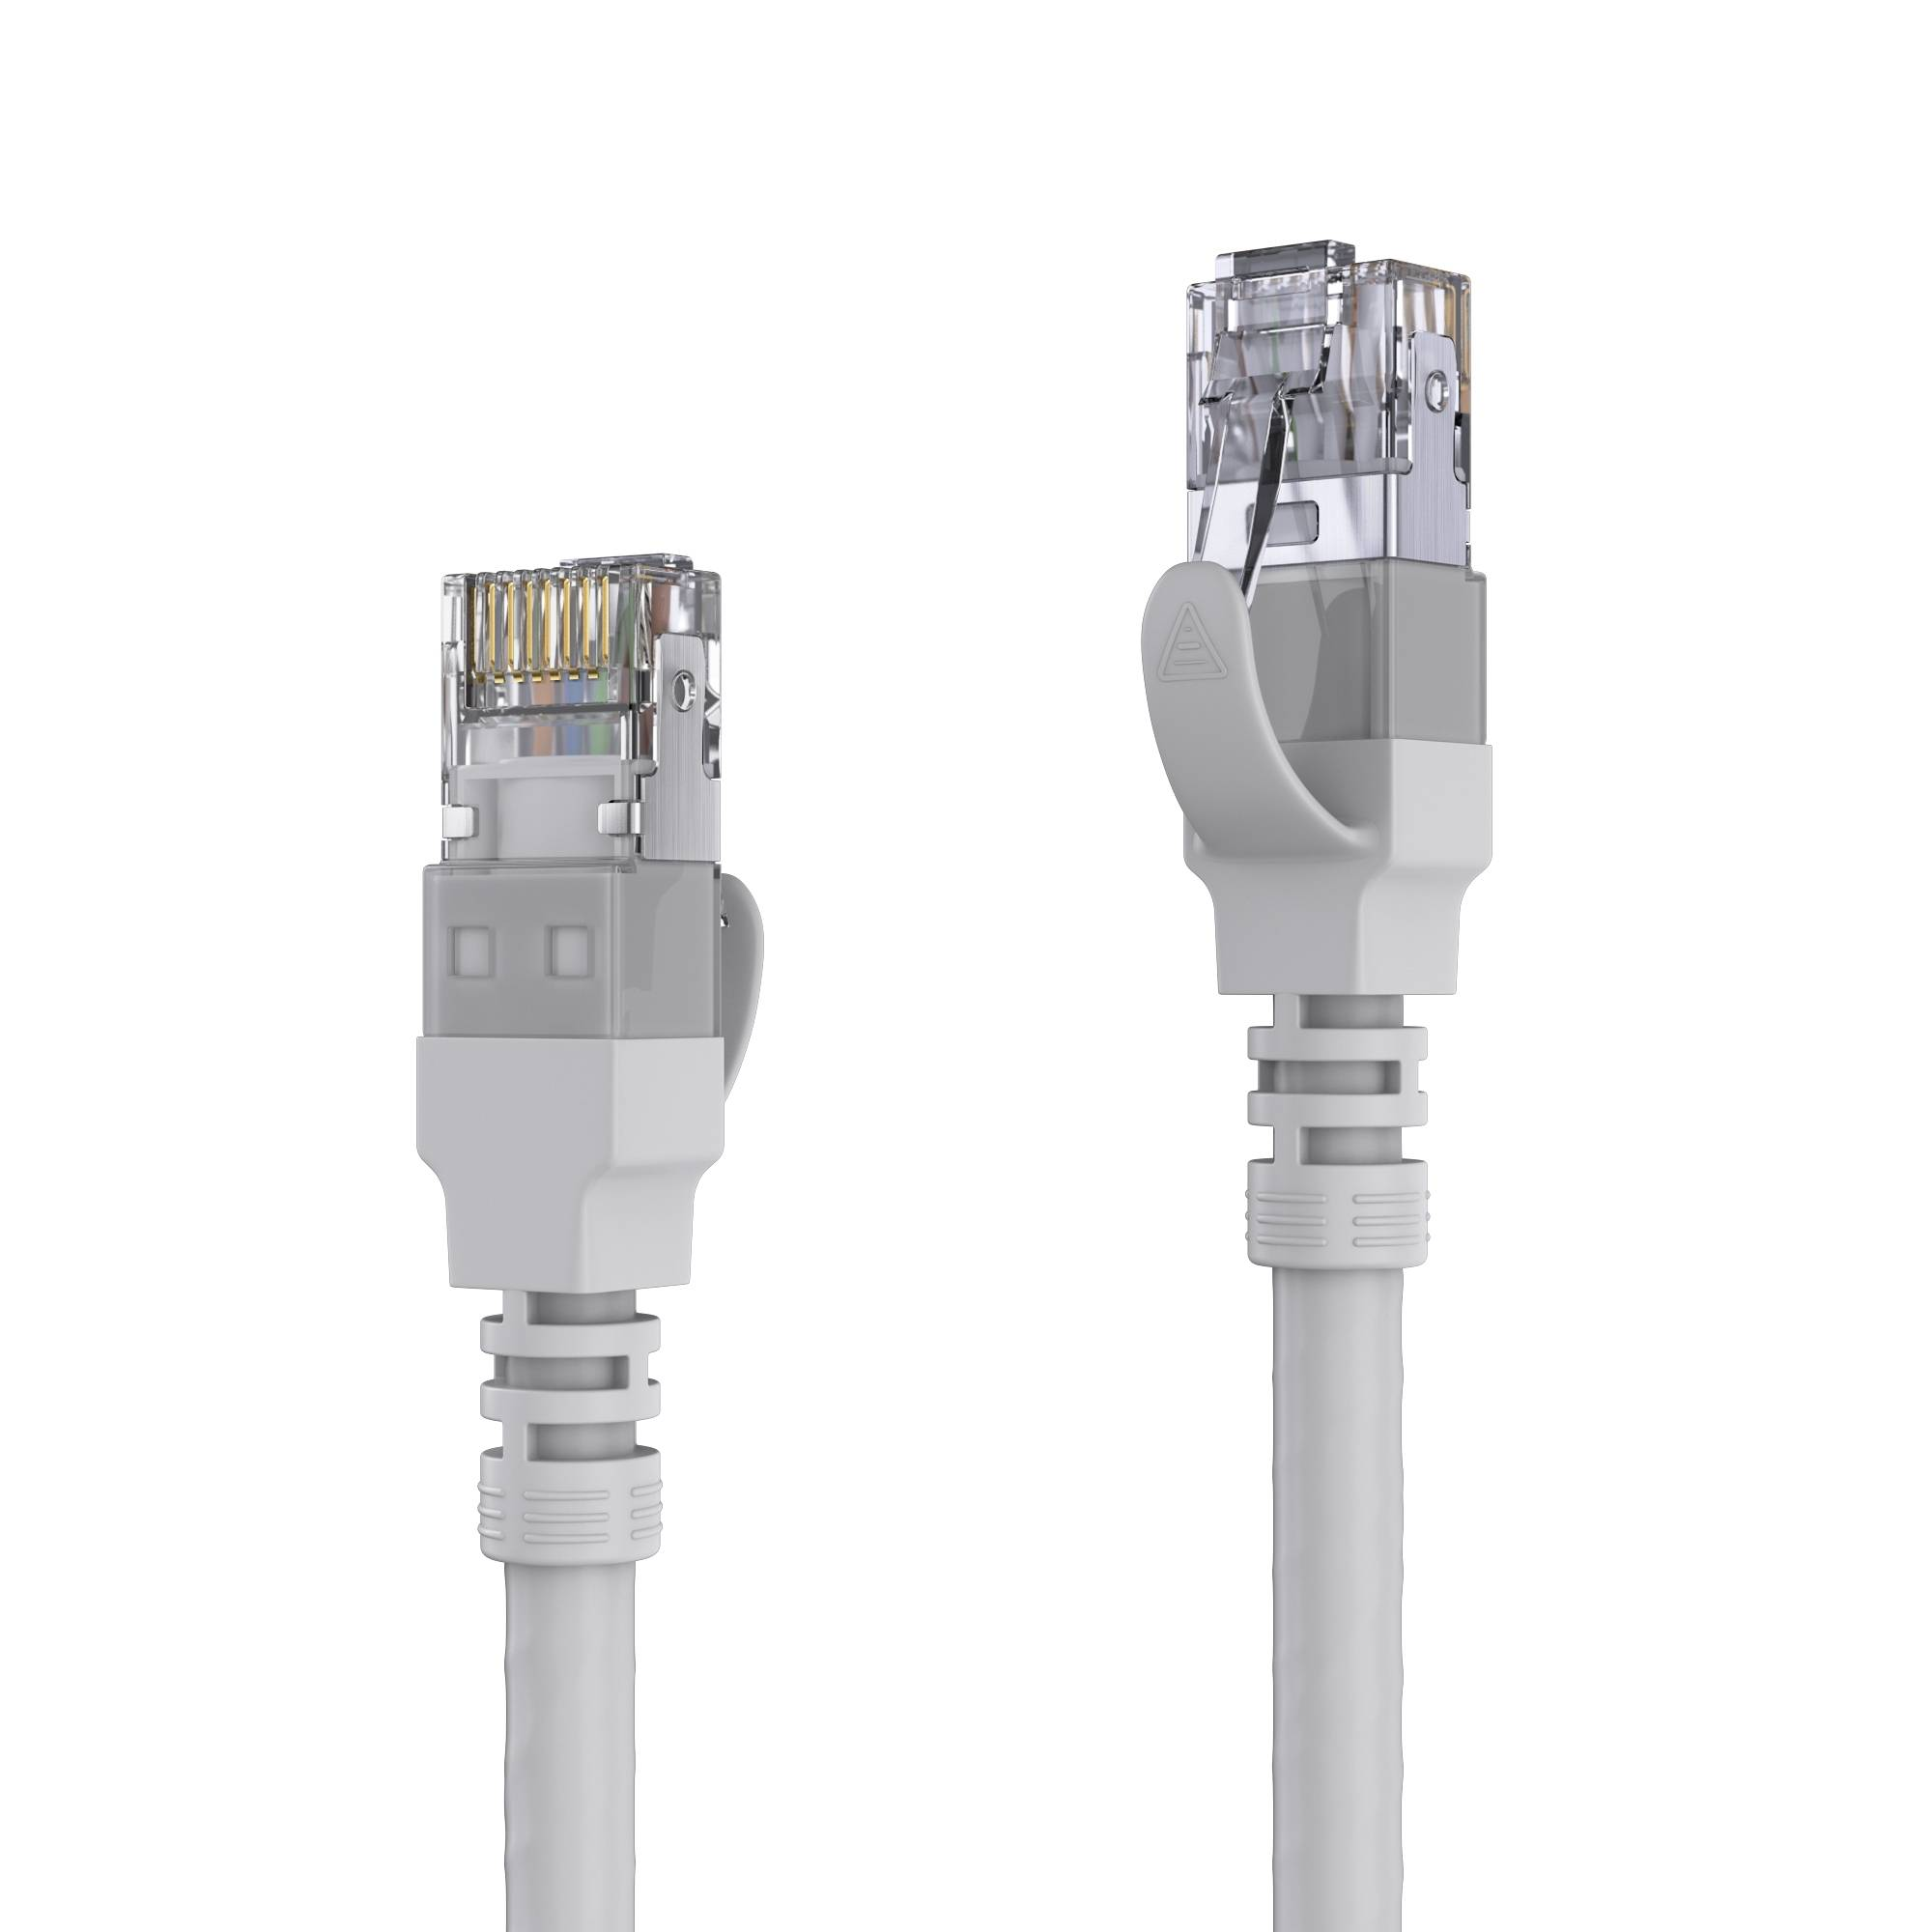 CAT 6A Patch Cable. S/FTP - LSOH - AWG 26 - grey - 45,0m | CAT 6 ...